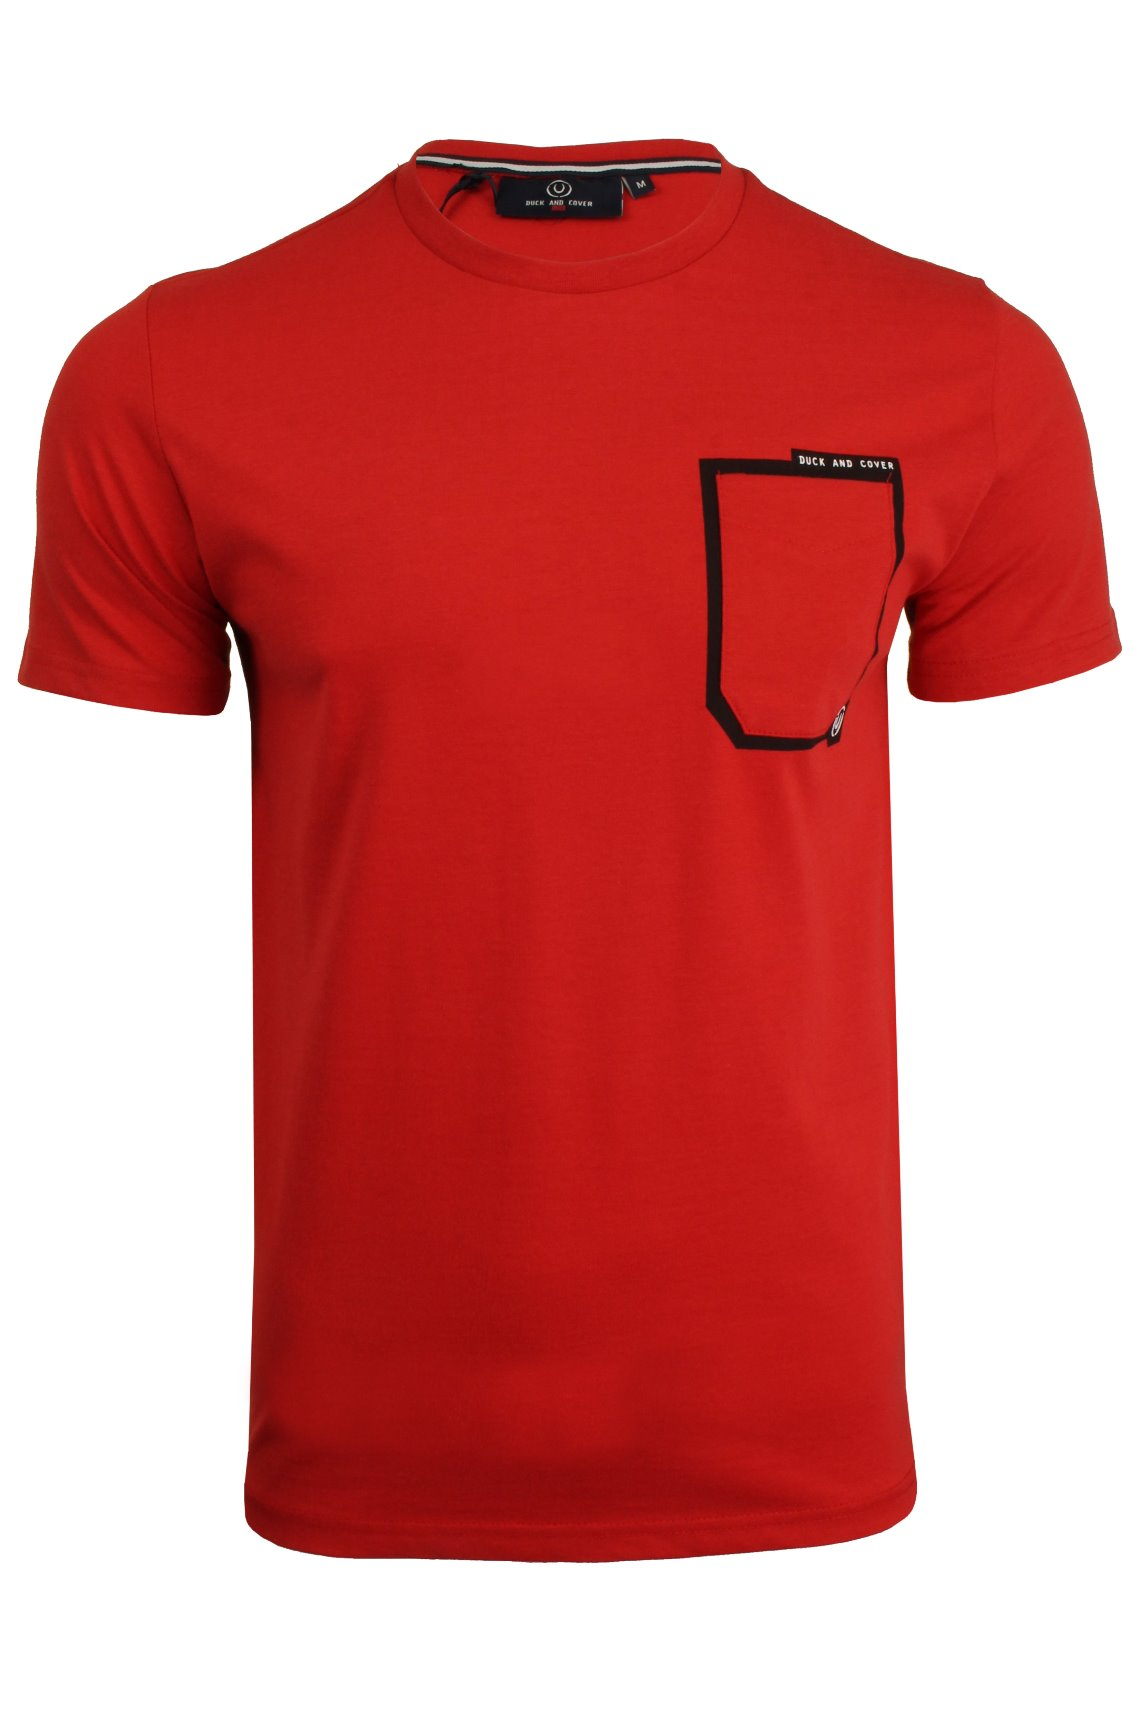 Mens-Duck-and-Cover-T-Shirt-039-Pulsed-039-Short-Sleeved